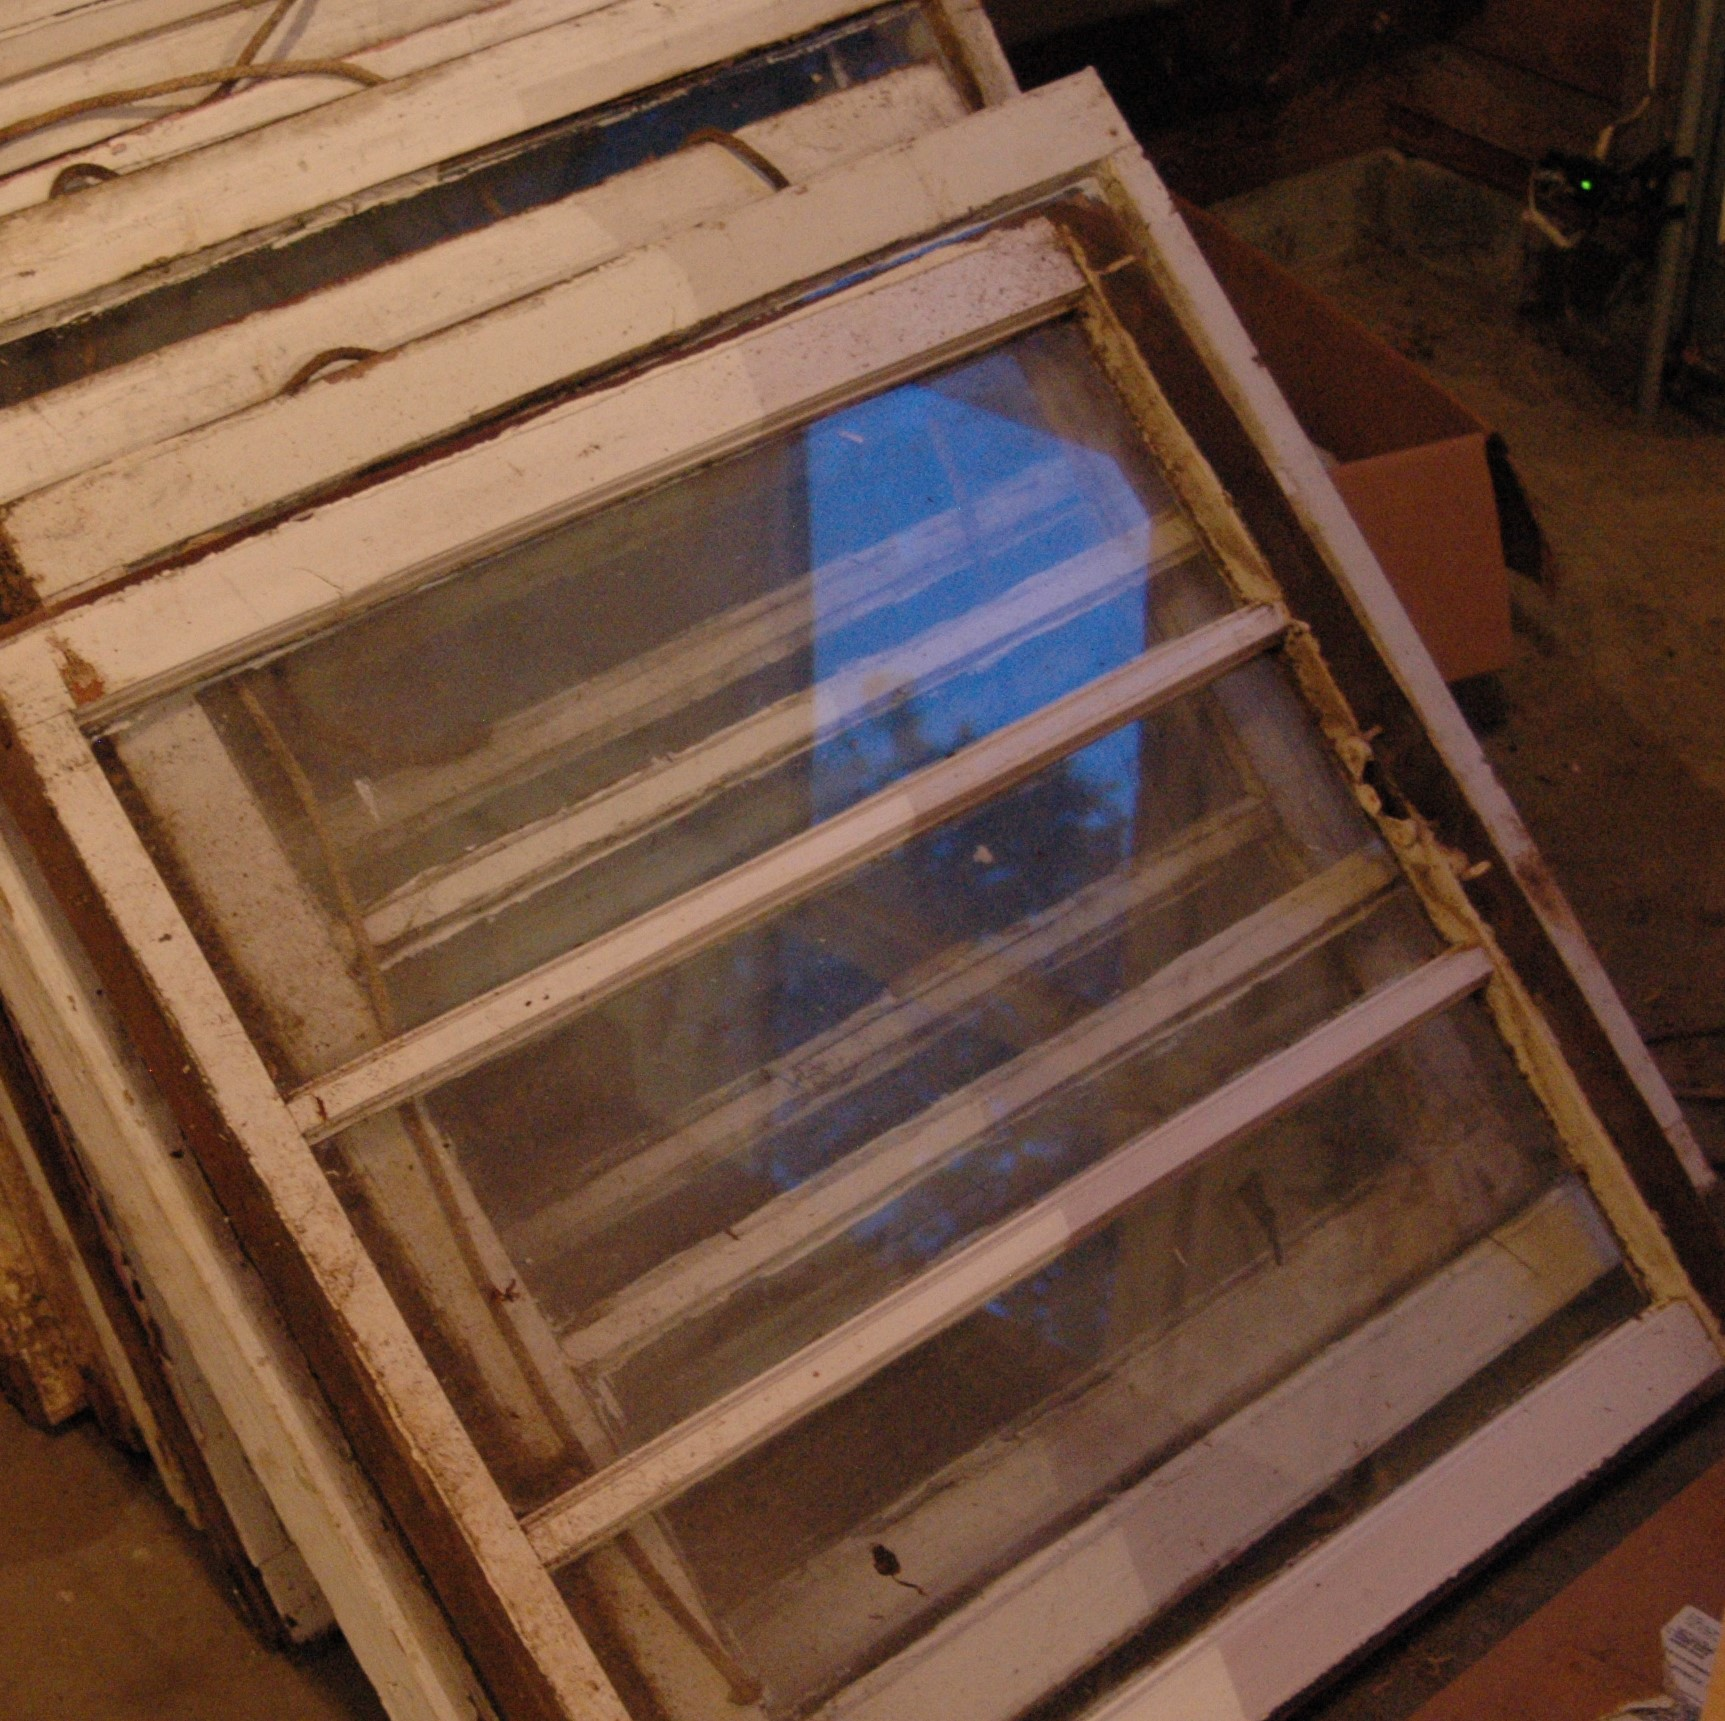 Farmhouse windows are lovely, but maybe not a fit for my greenhouse